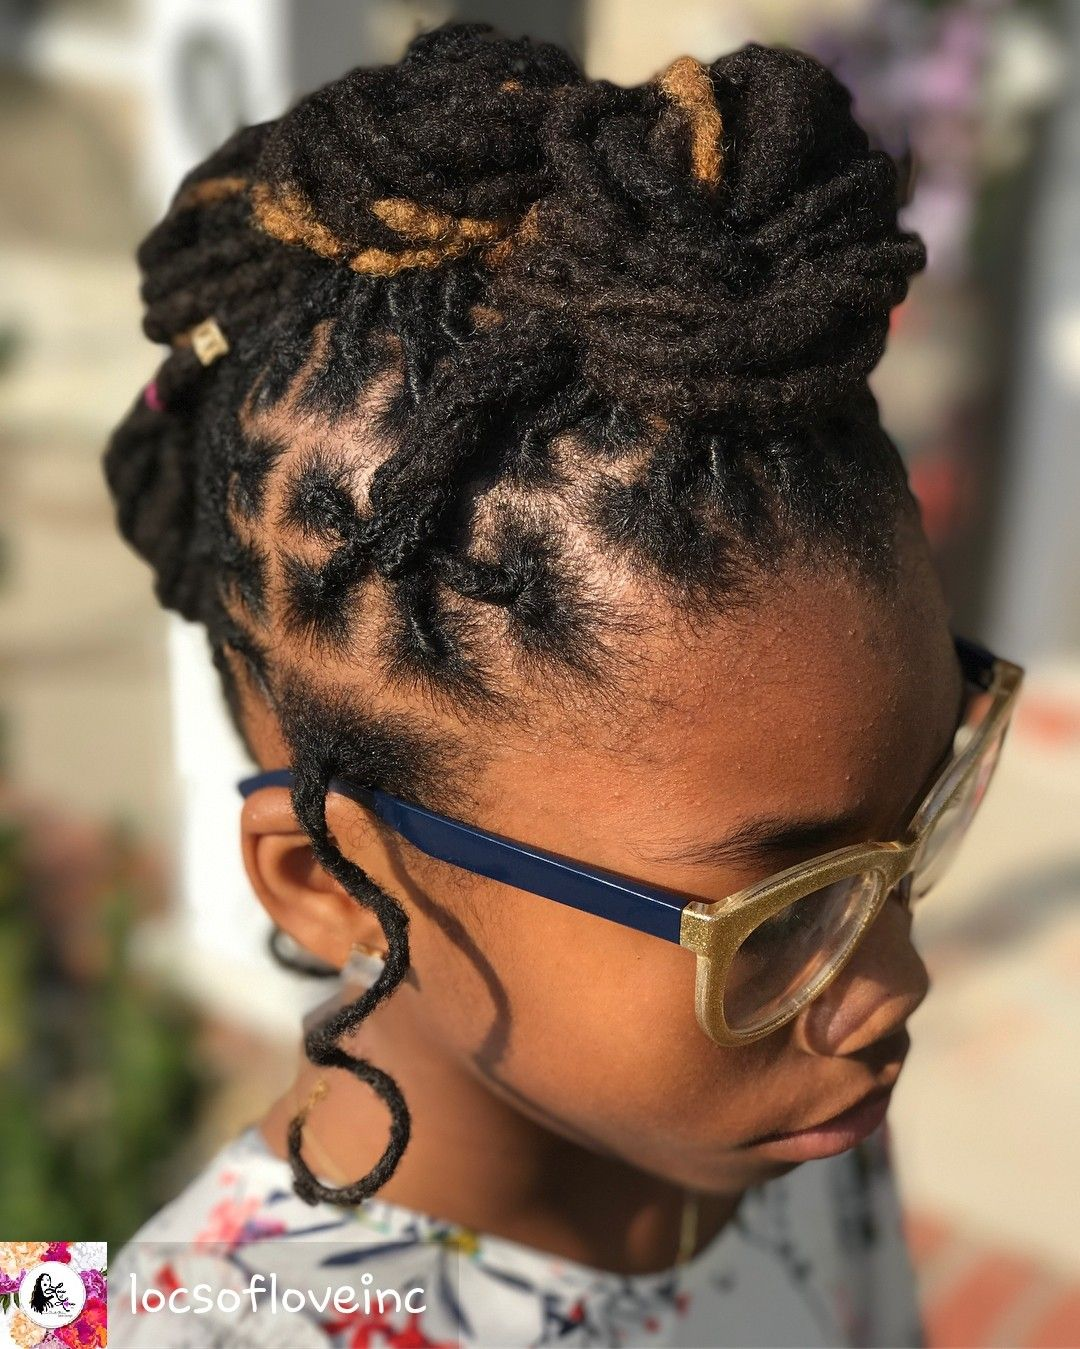 Pin By Hillary Marie On Kids Rock Locs Natural Hair 2 Locs Hairstyles Hair Styles Dreadlock Hairstyles